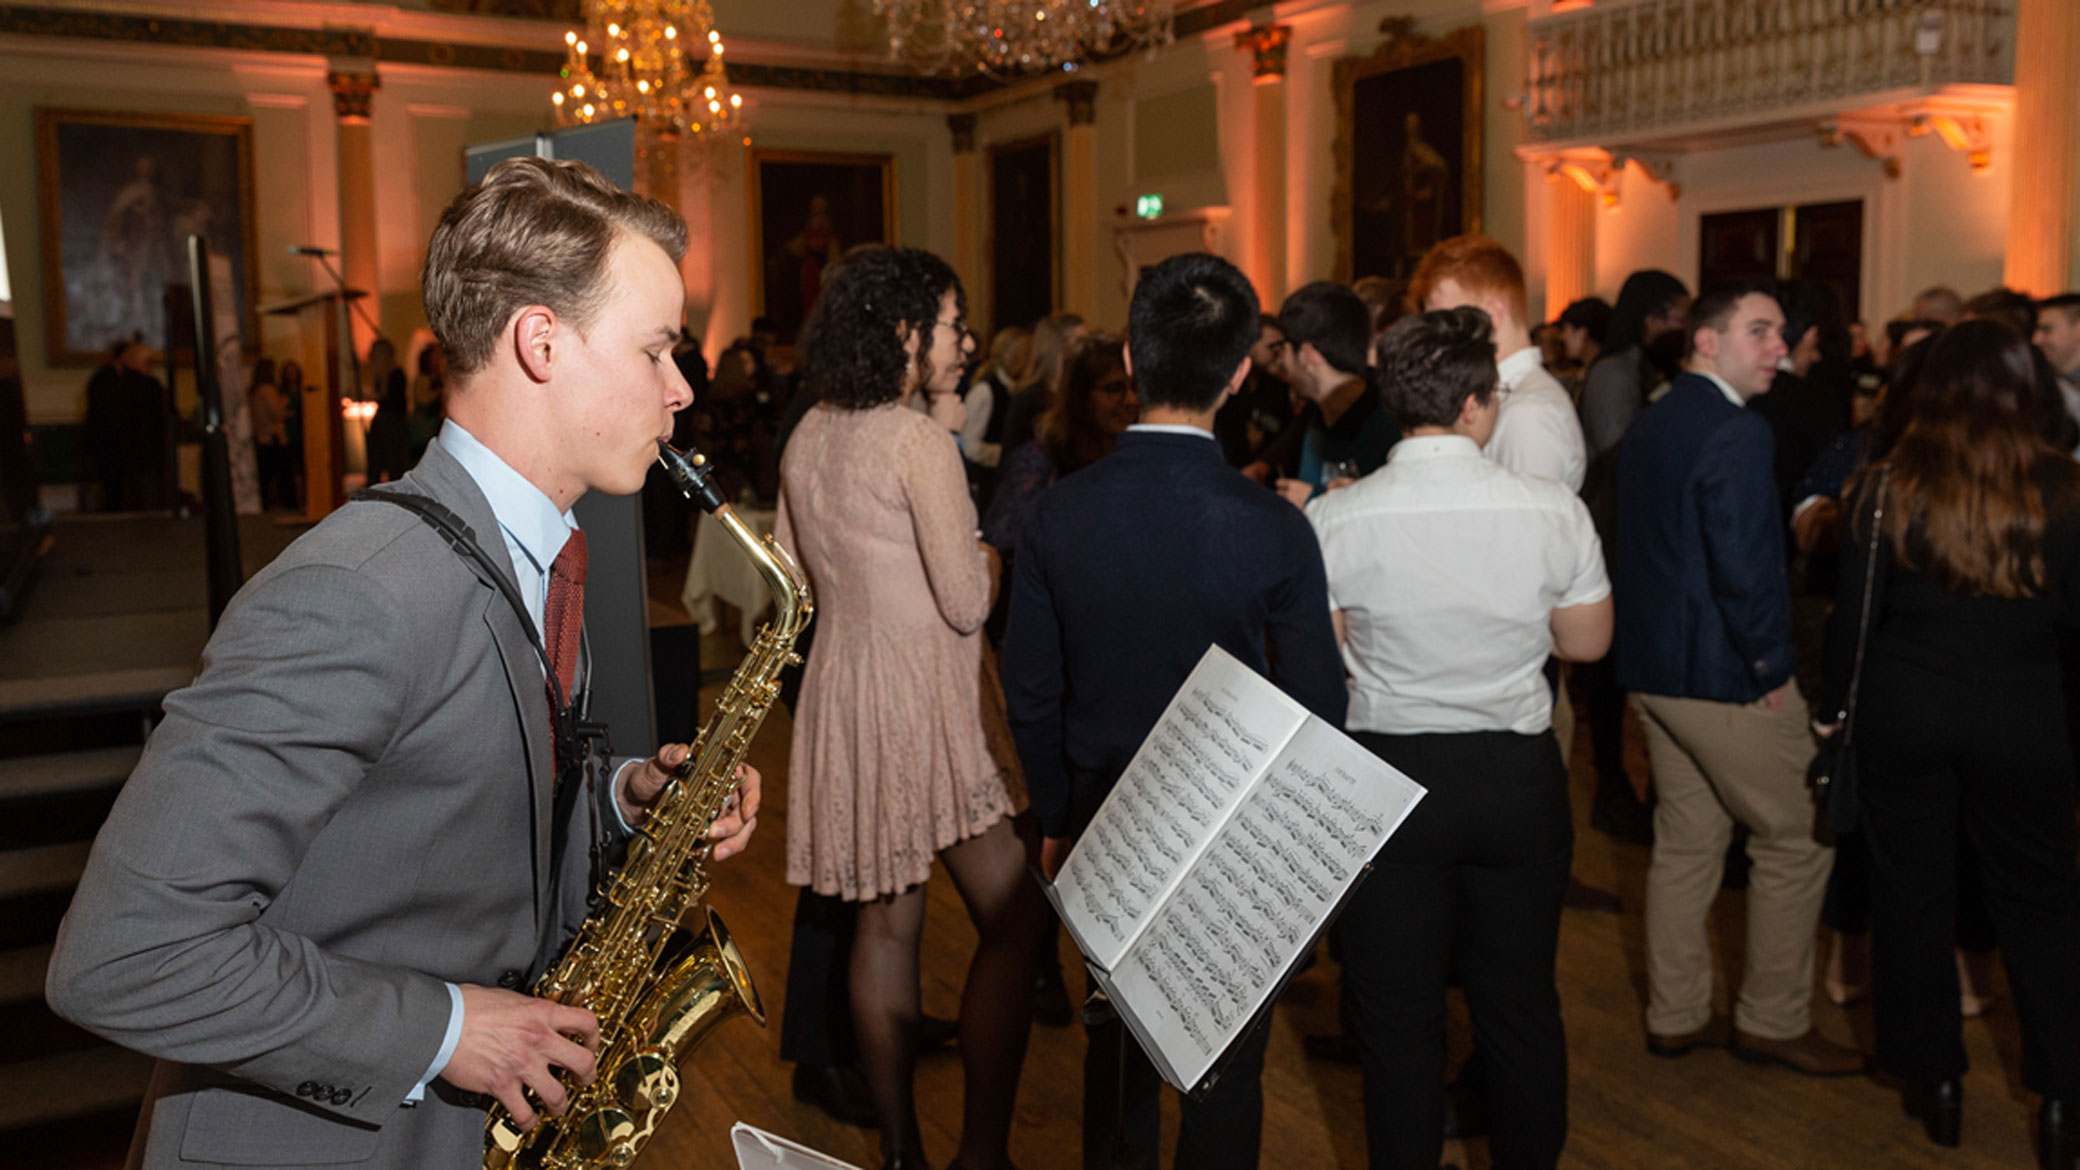 Santander Arts Scholar, Bas Lodewijks, playing saxophone in the Guildhall